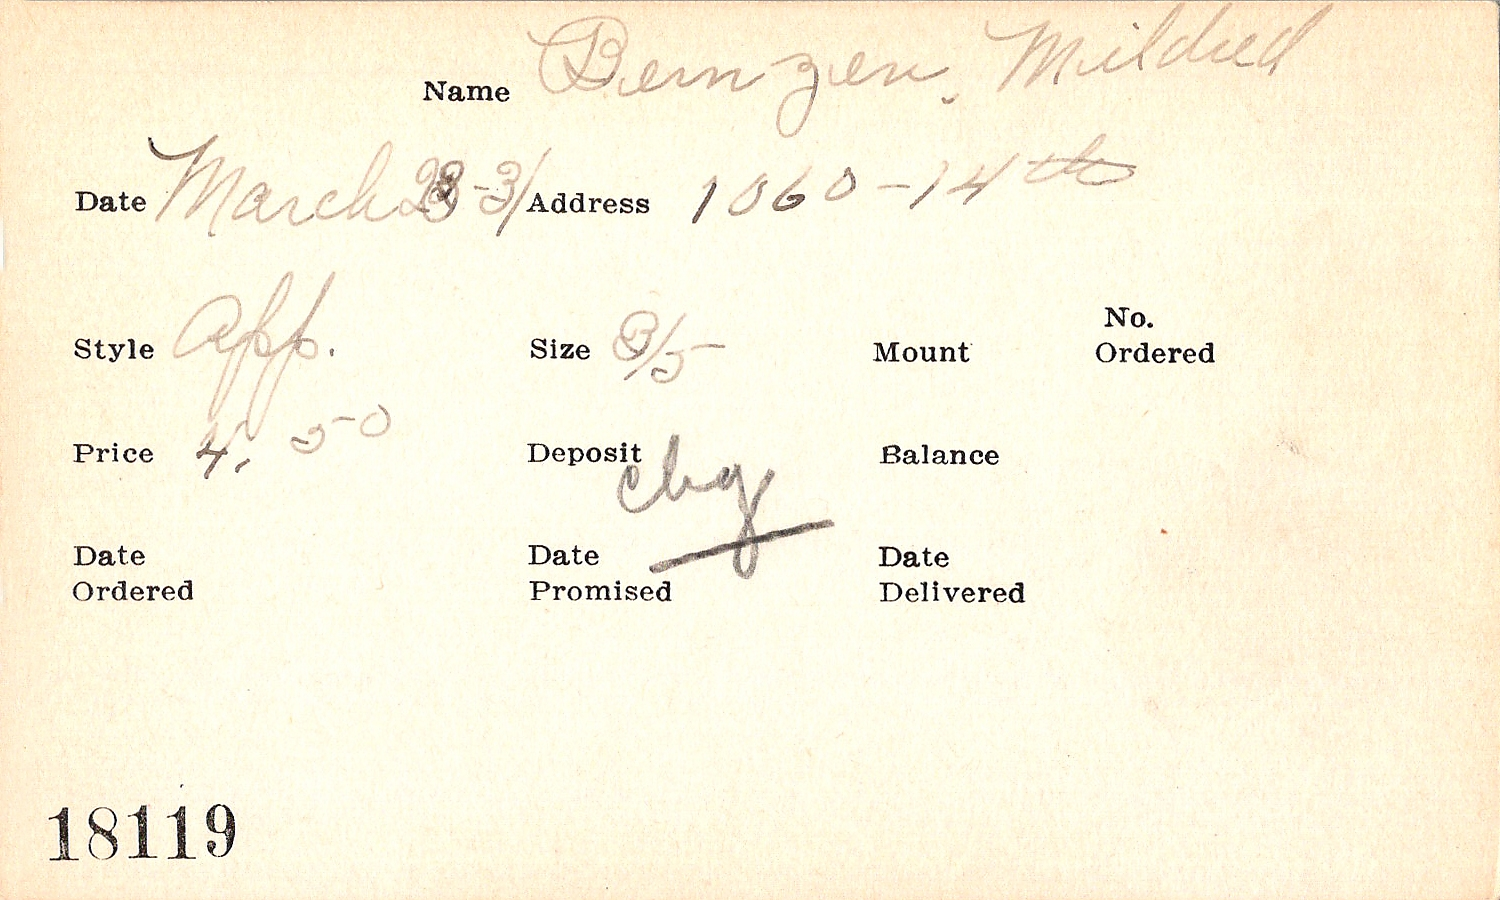 Index card for Mildred Bernzen